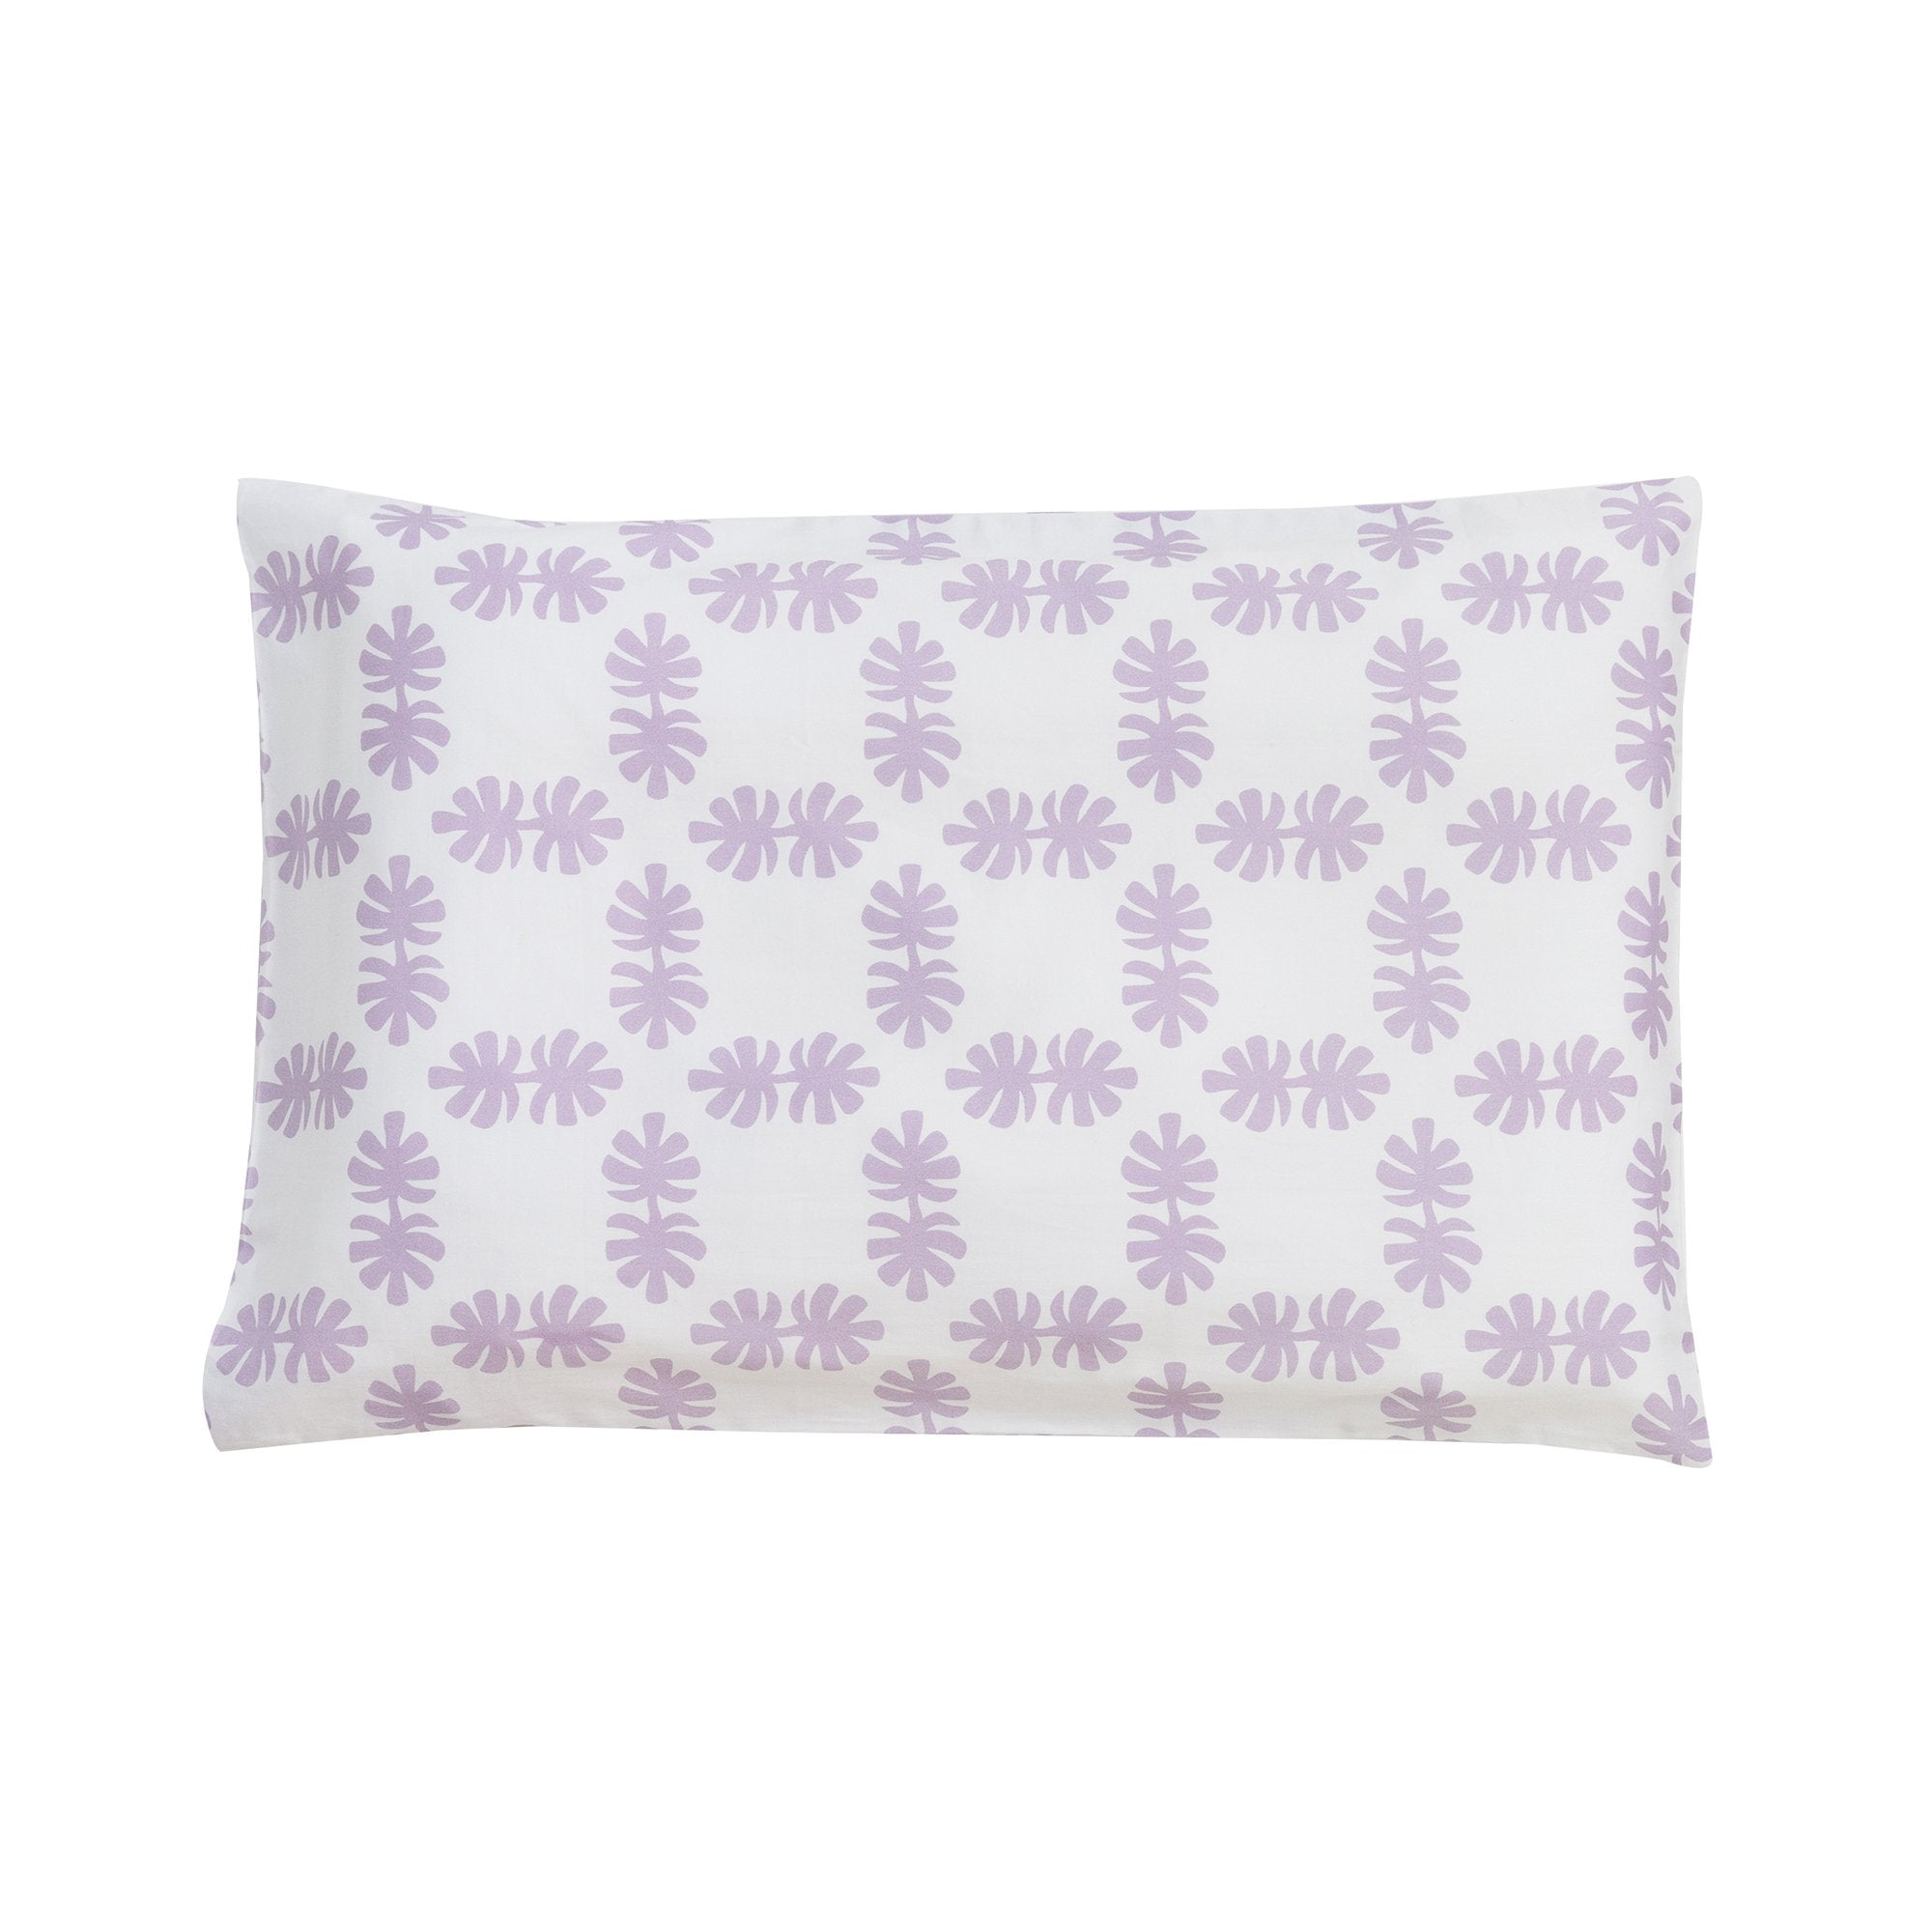 Kikau's Lovely Lilac Coconut Palm kids pillowcase on white background